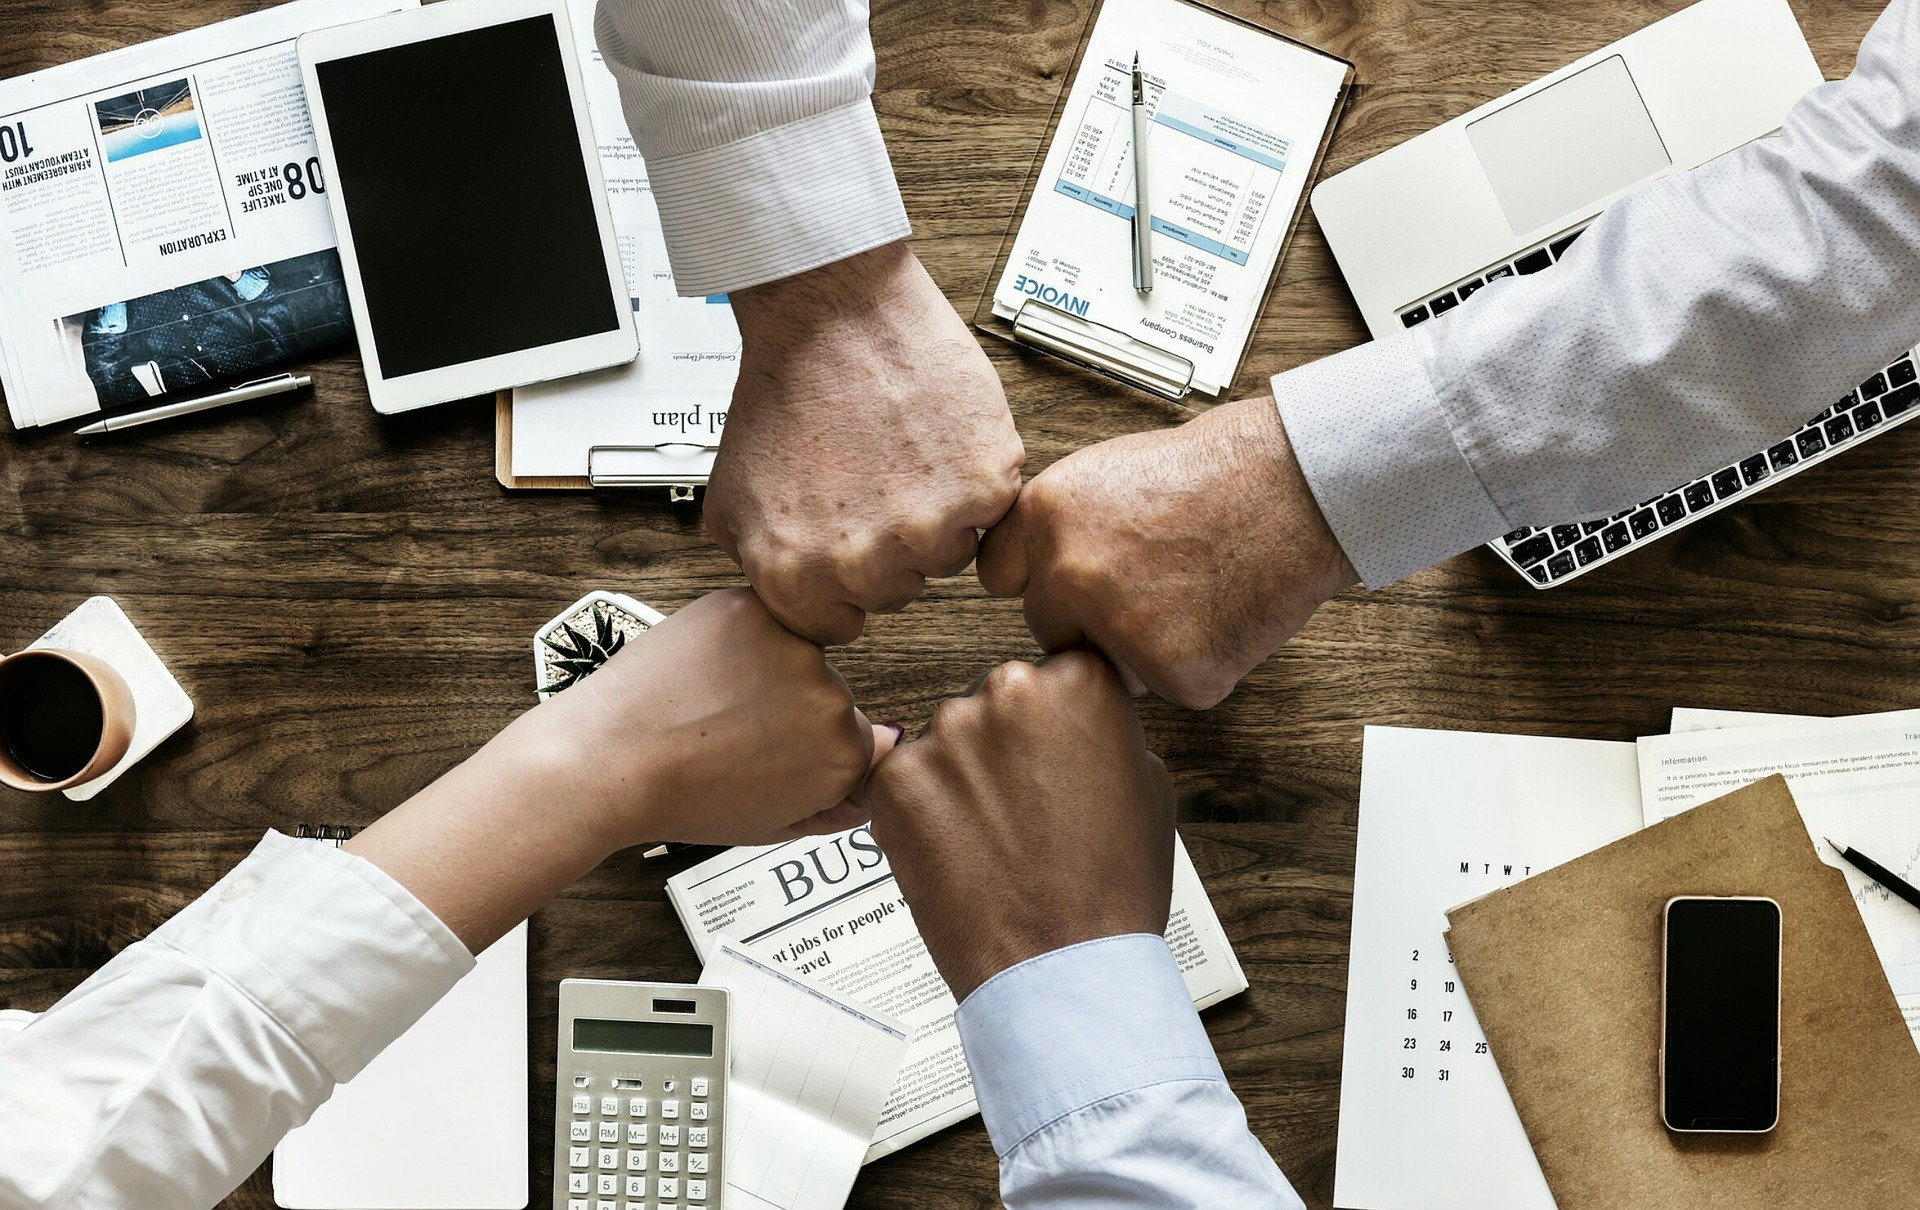 team of people joining hands